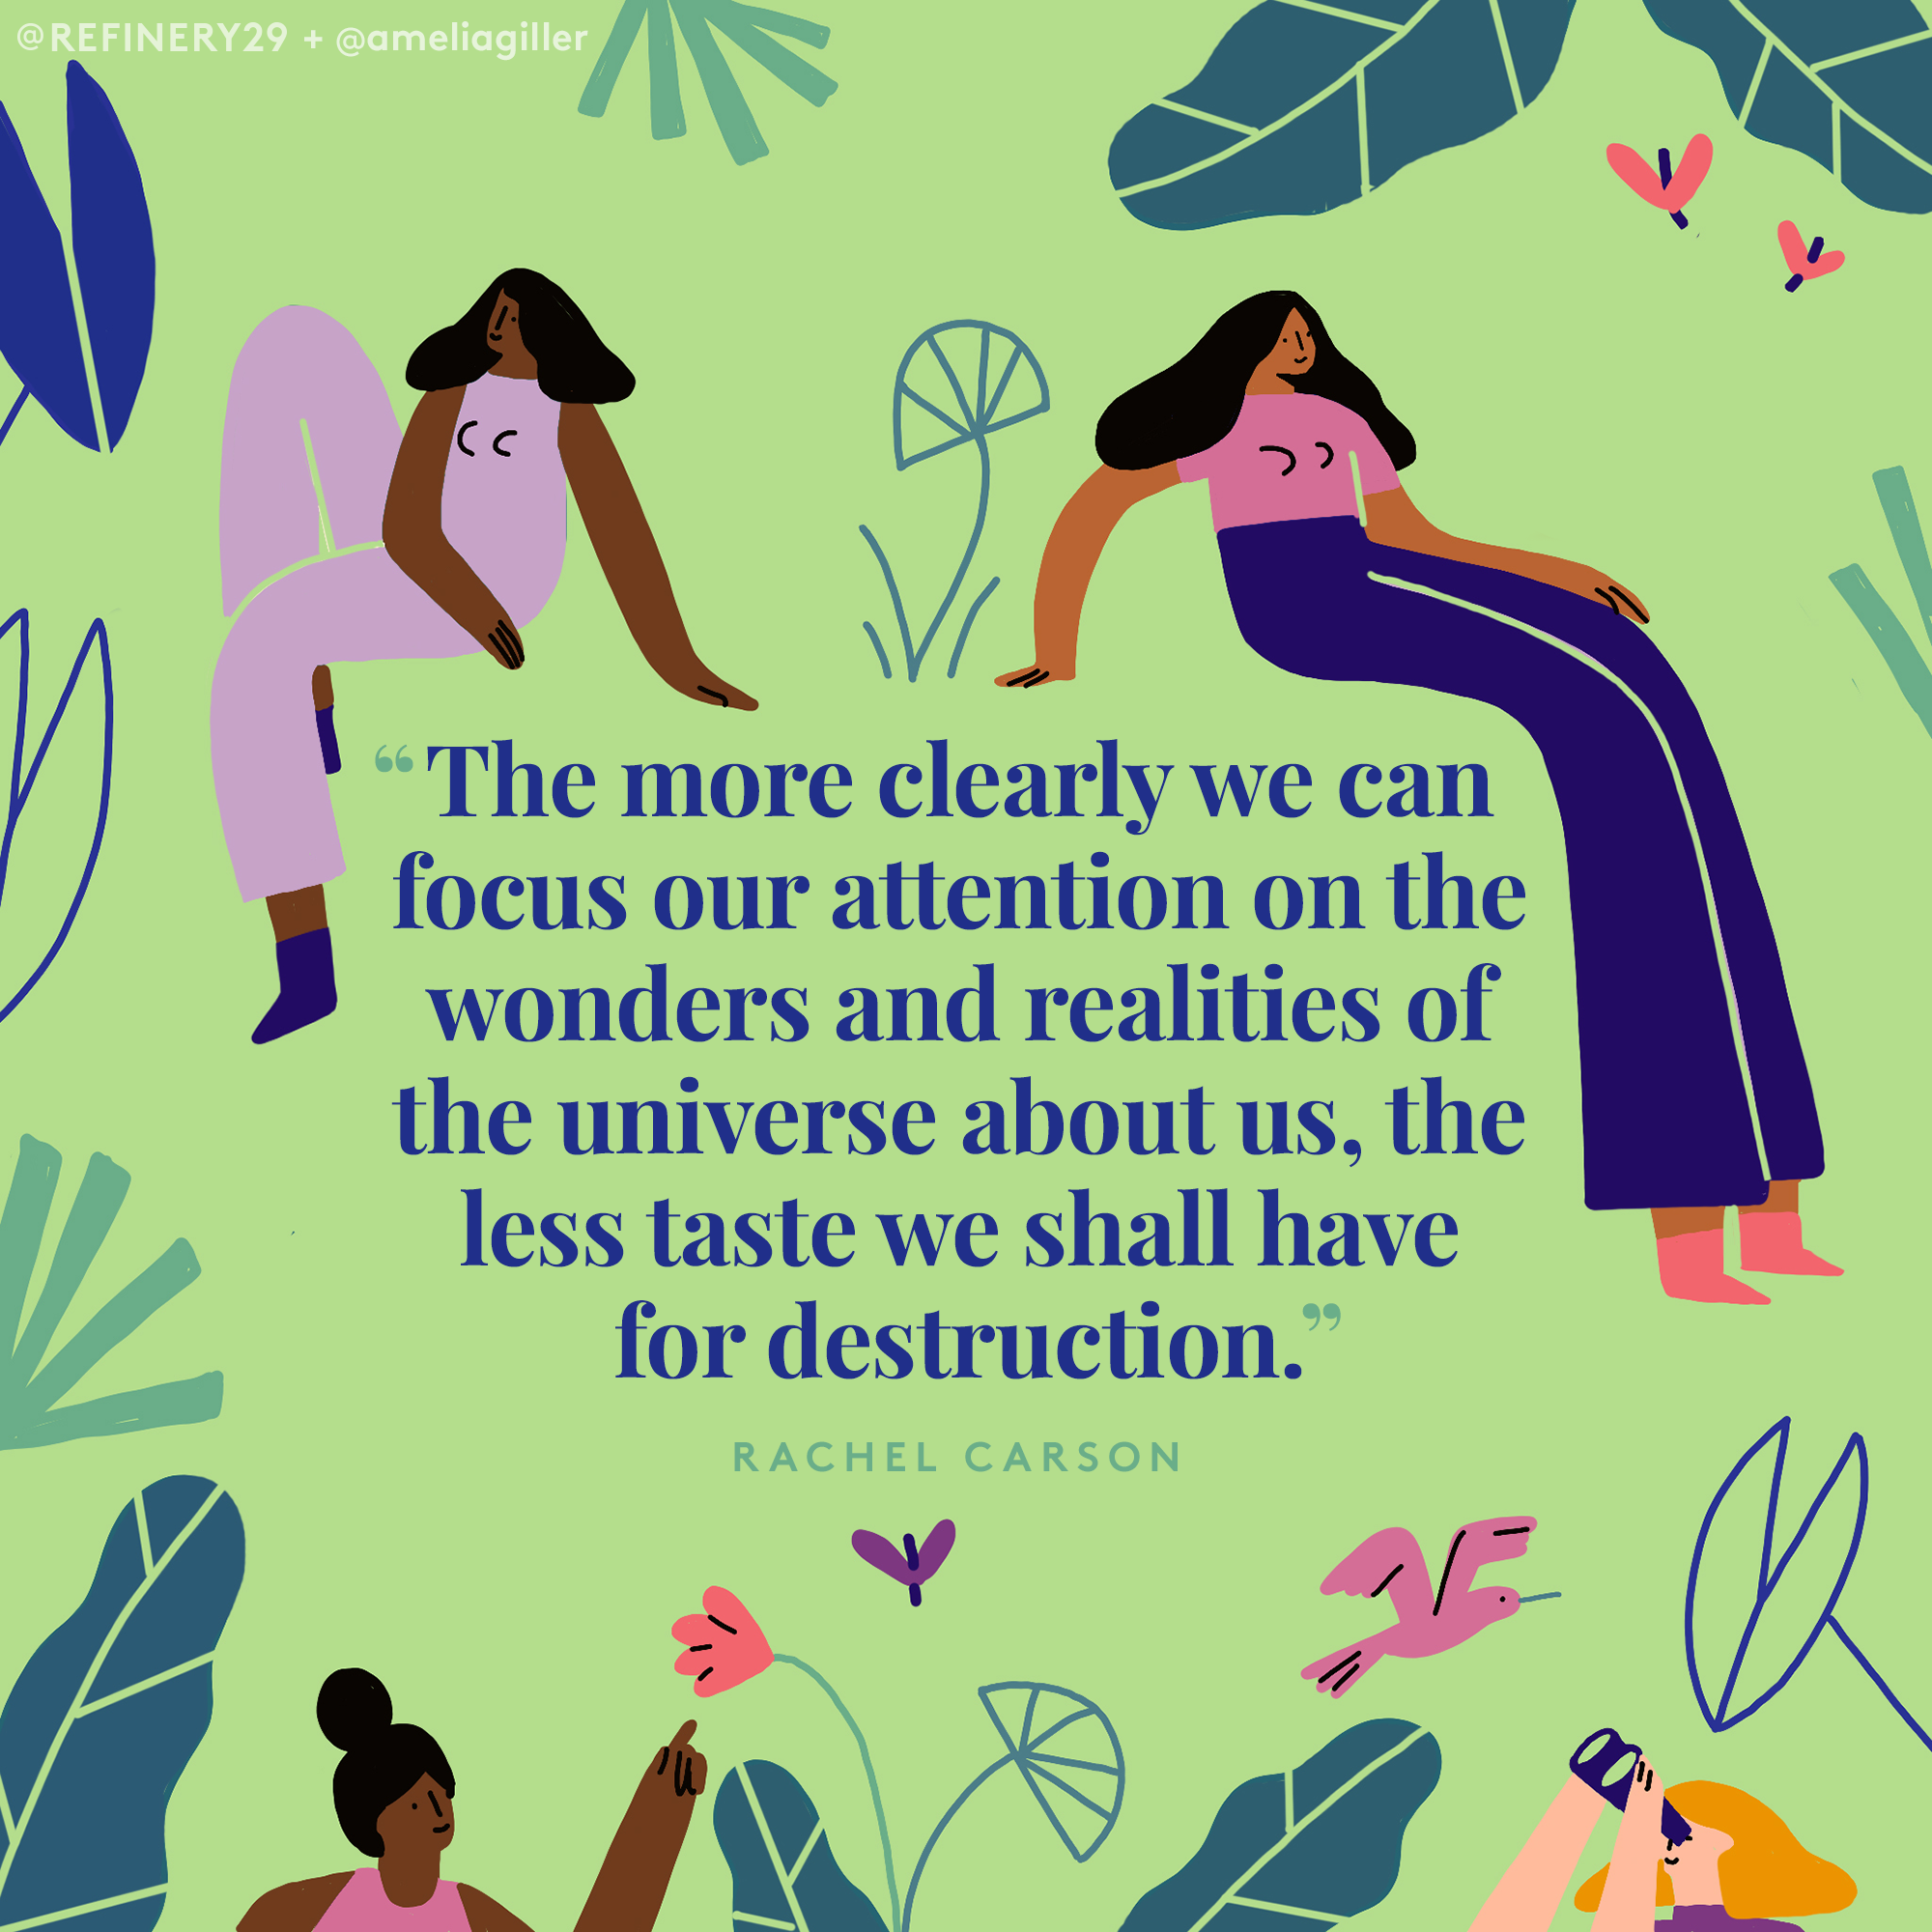 Giller-Amelia_Earth-Month-Quote-1_20170424_2000x2000_Instagram.png